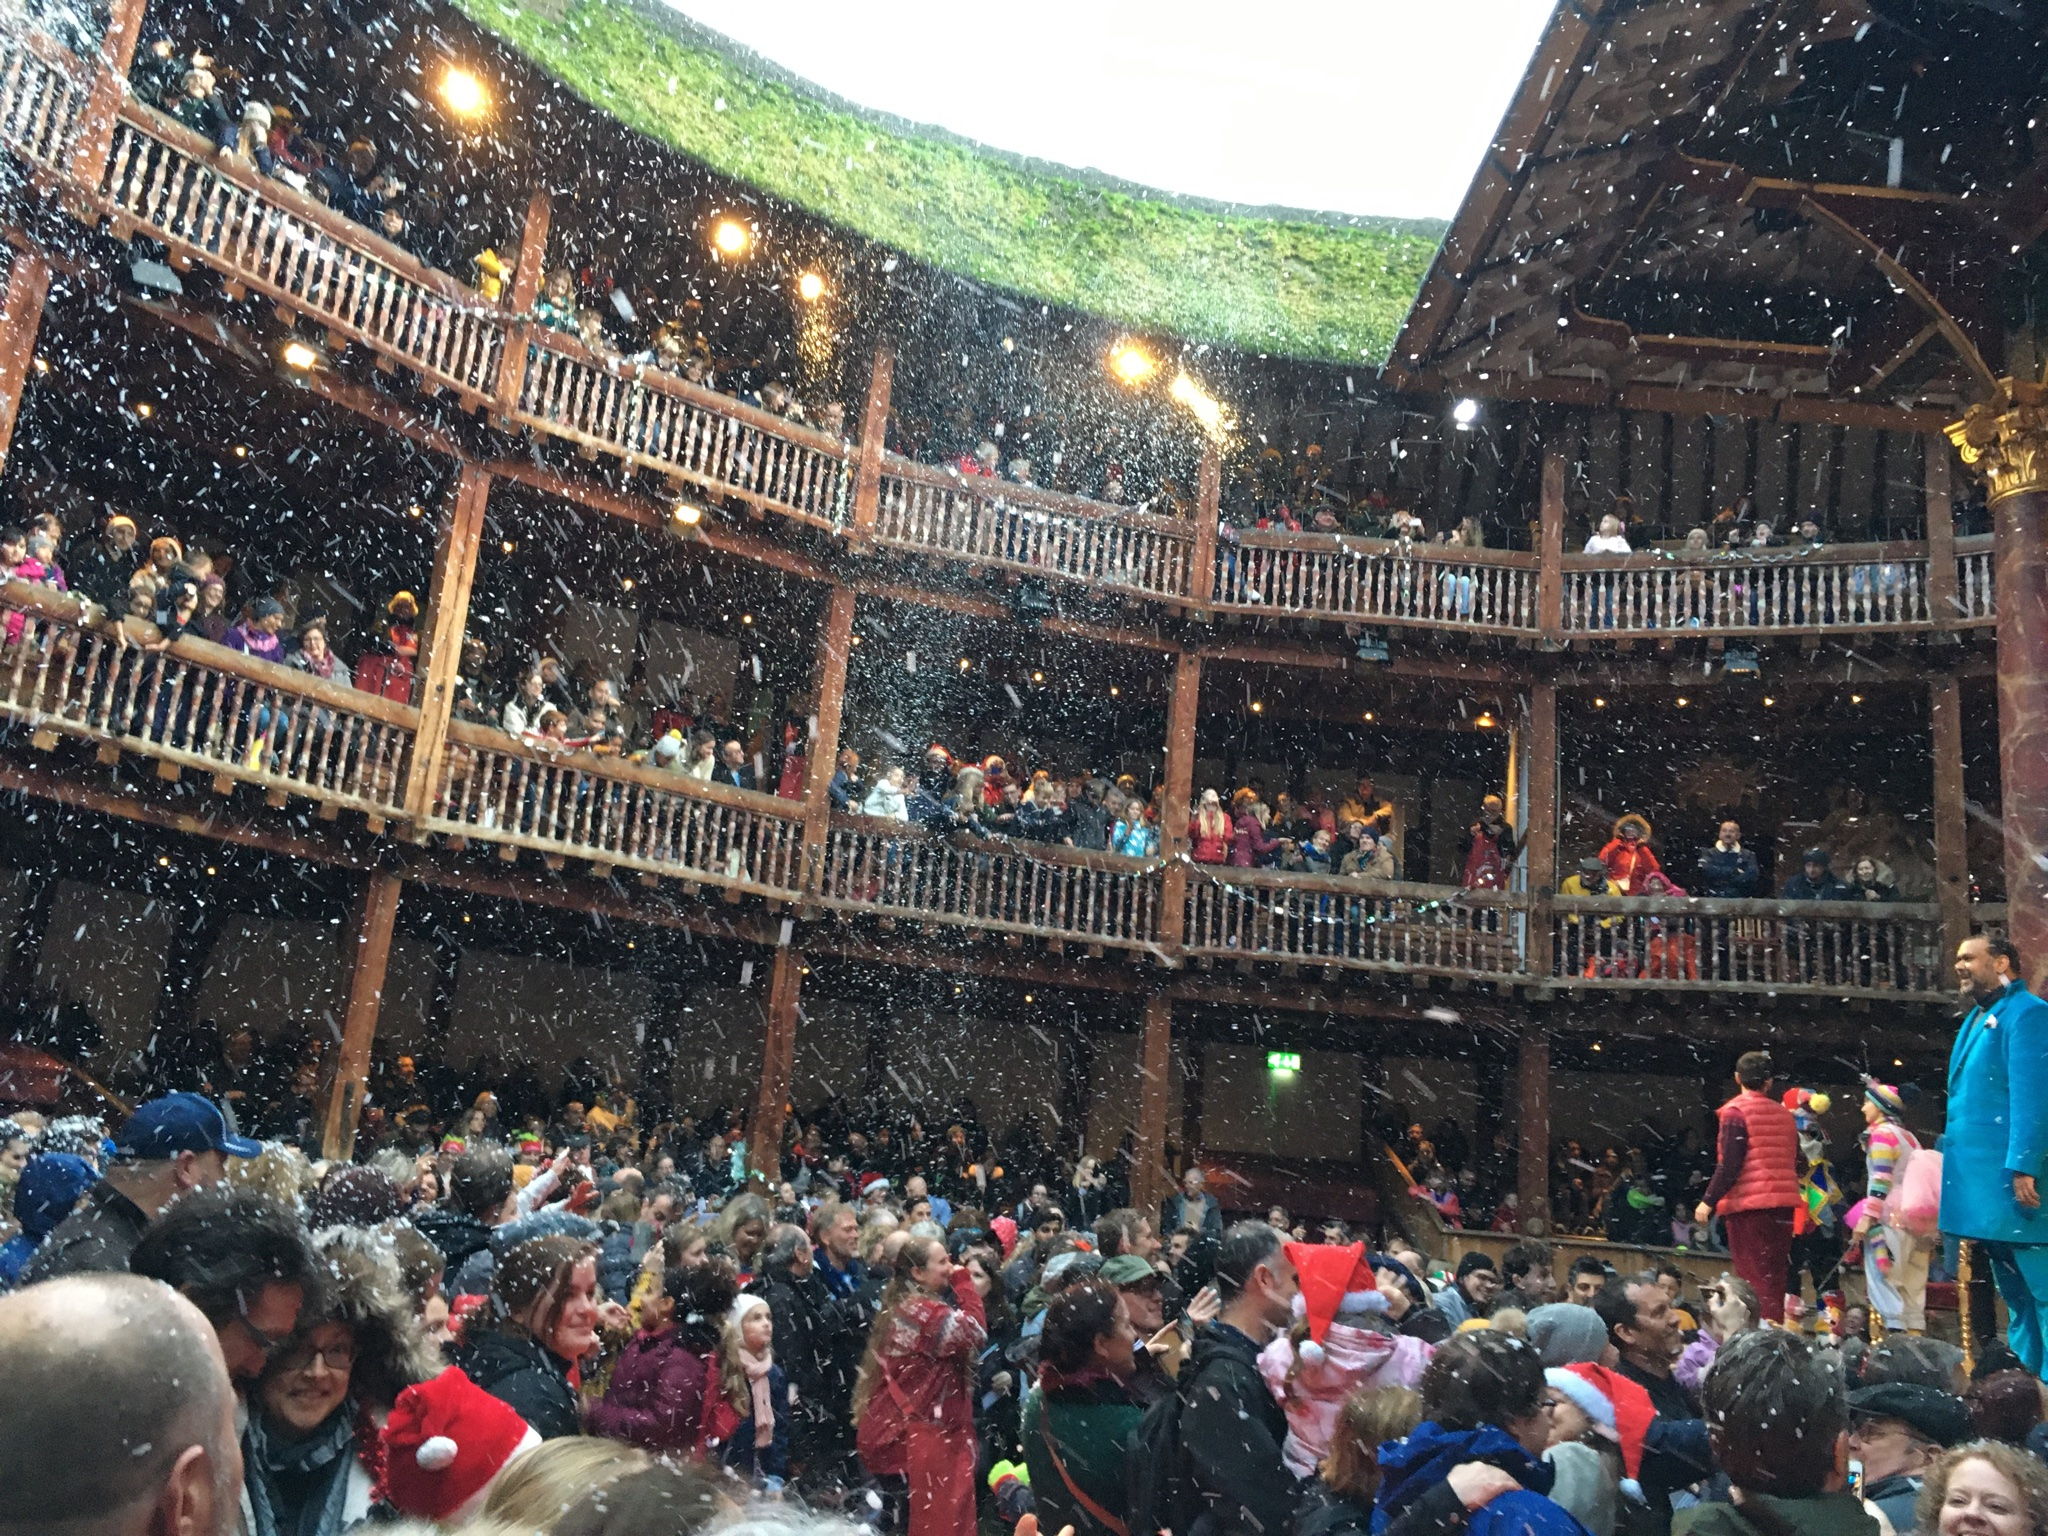 The Globe theatre full of snow